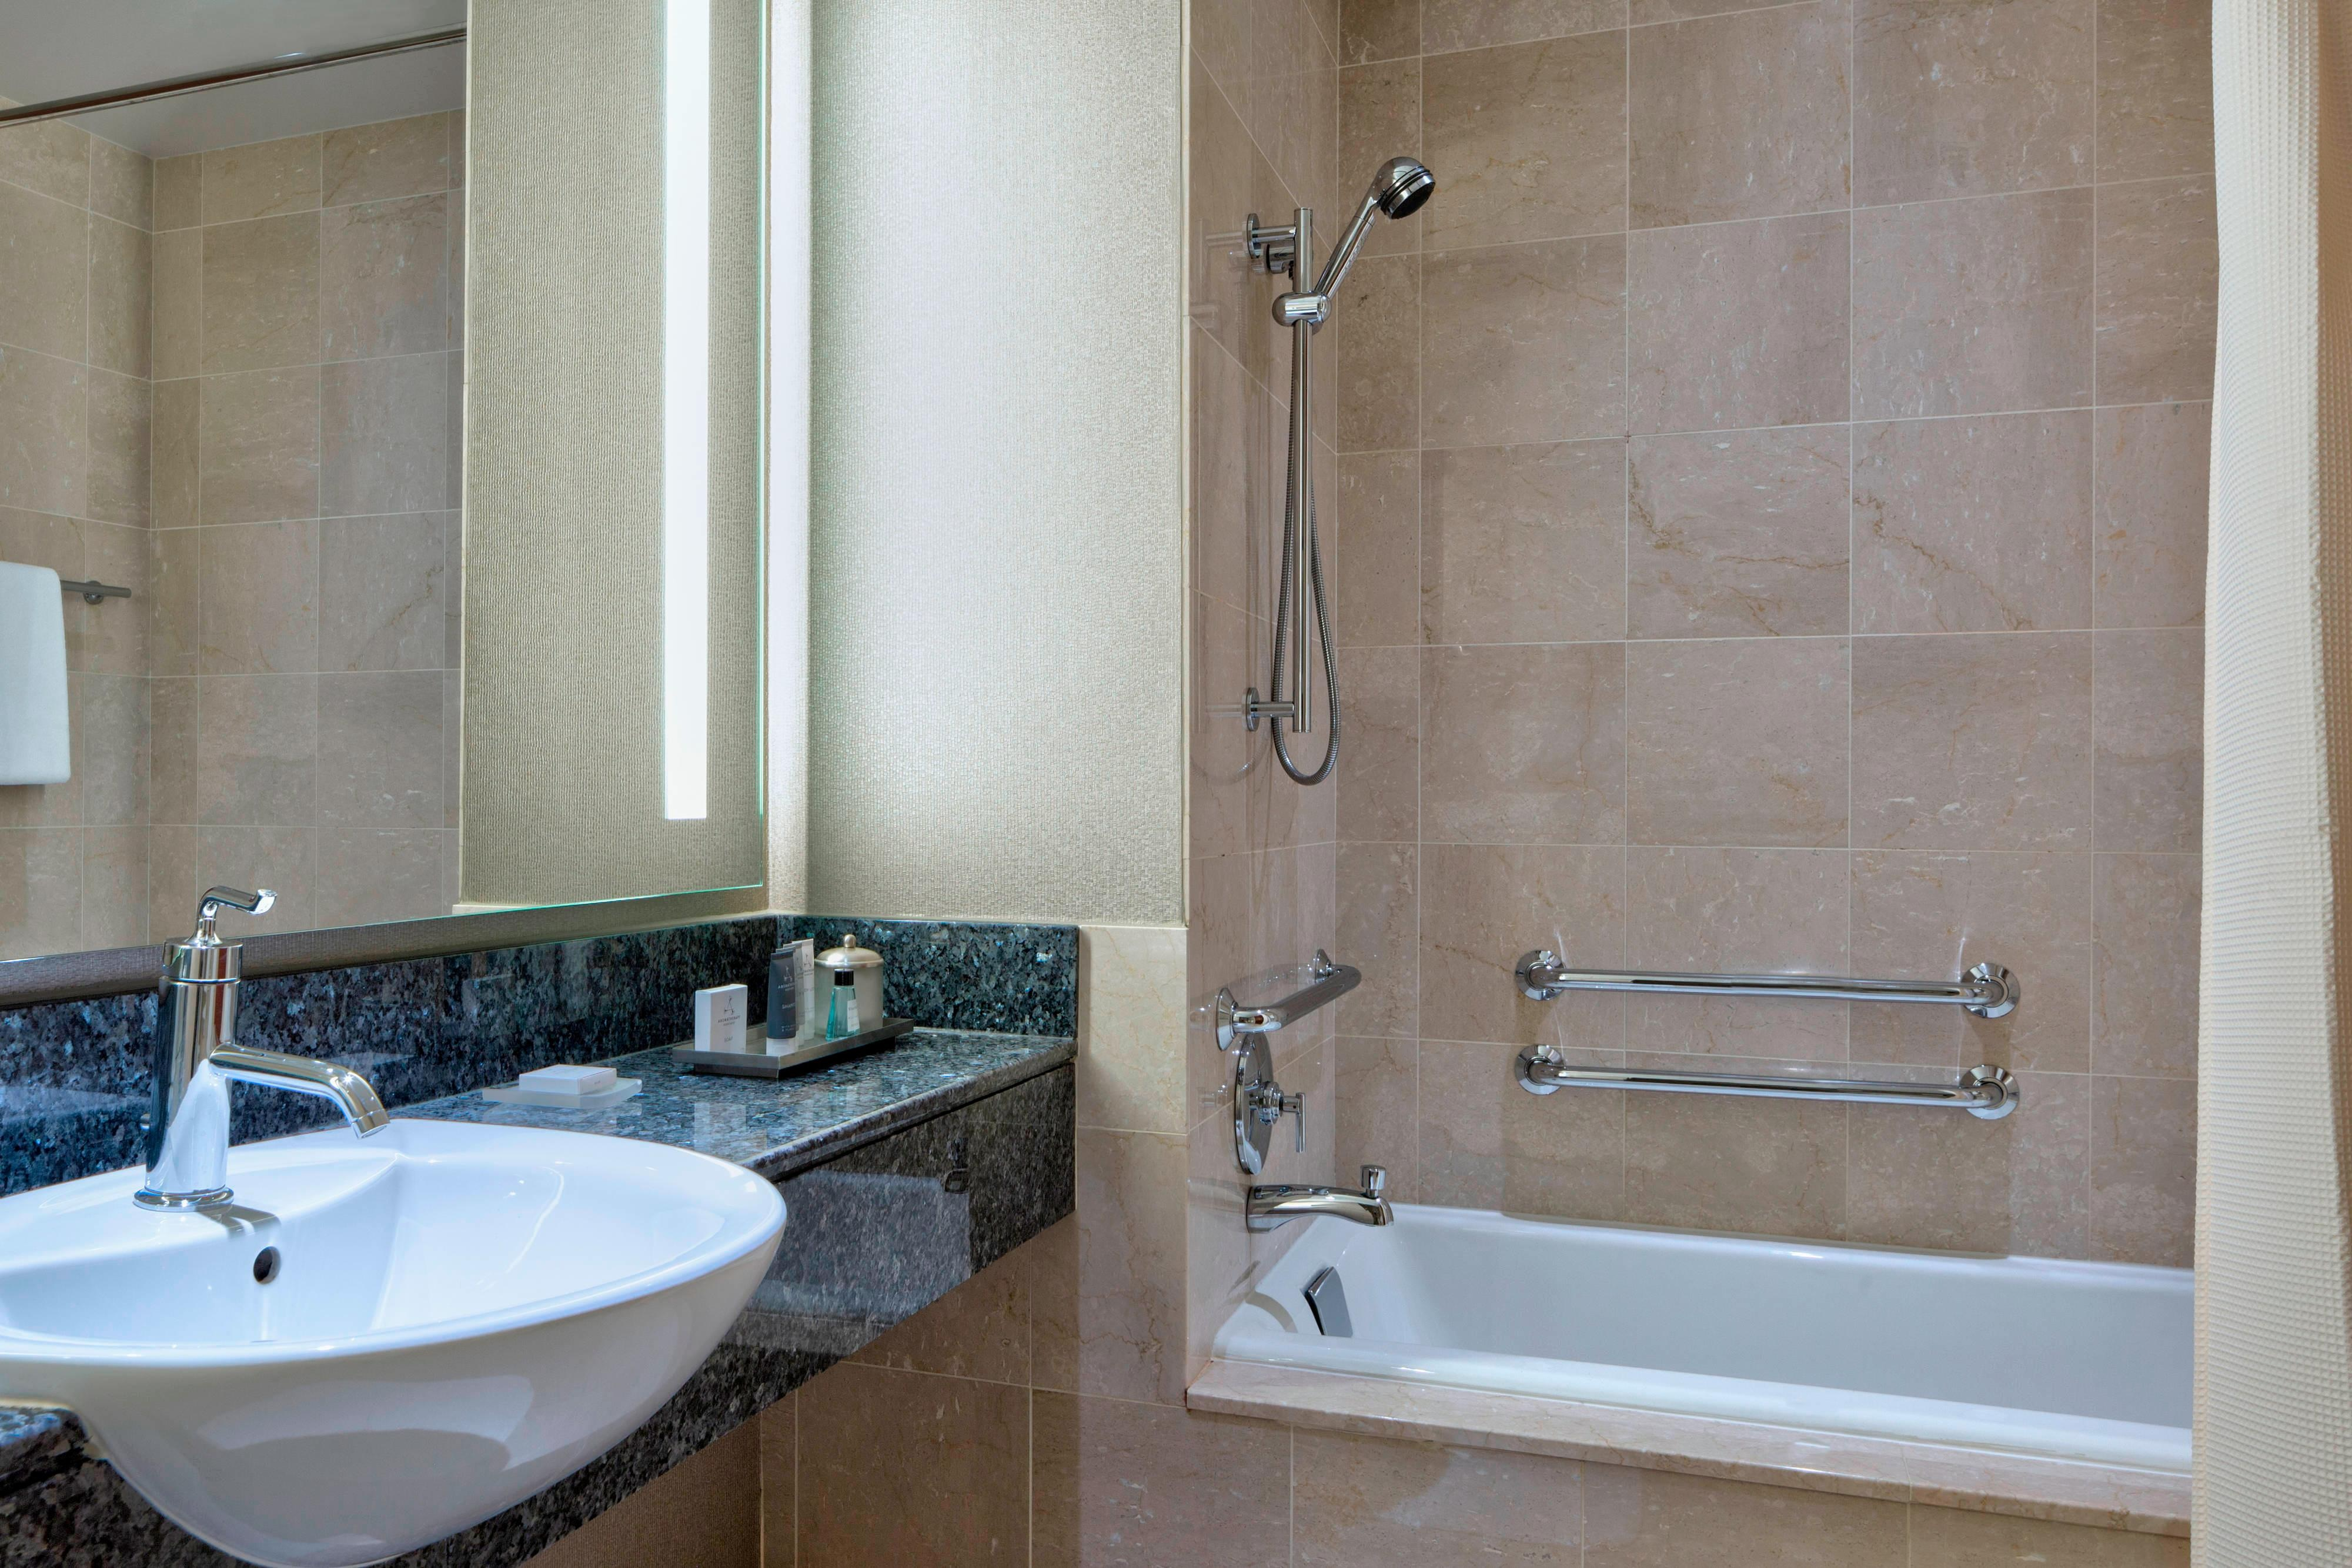 Guest Bathroom - Shower/Bathtub Combination